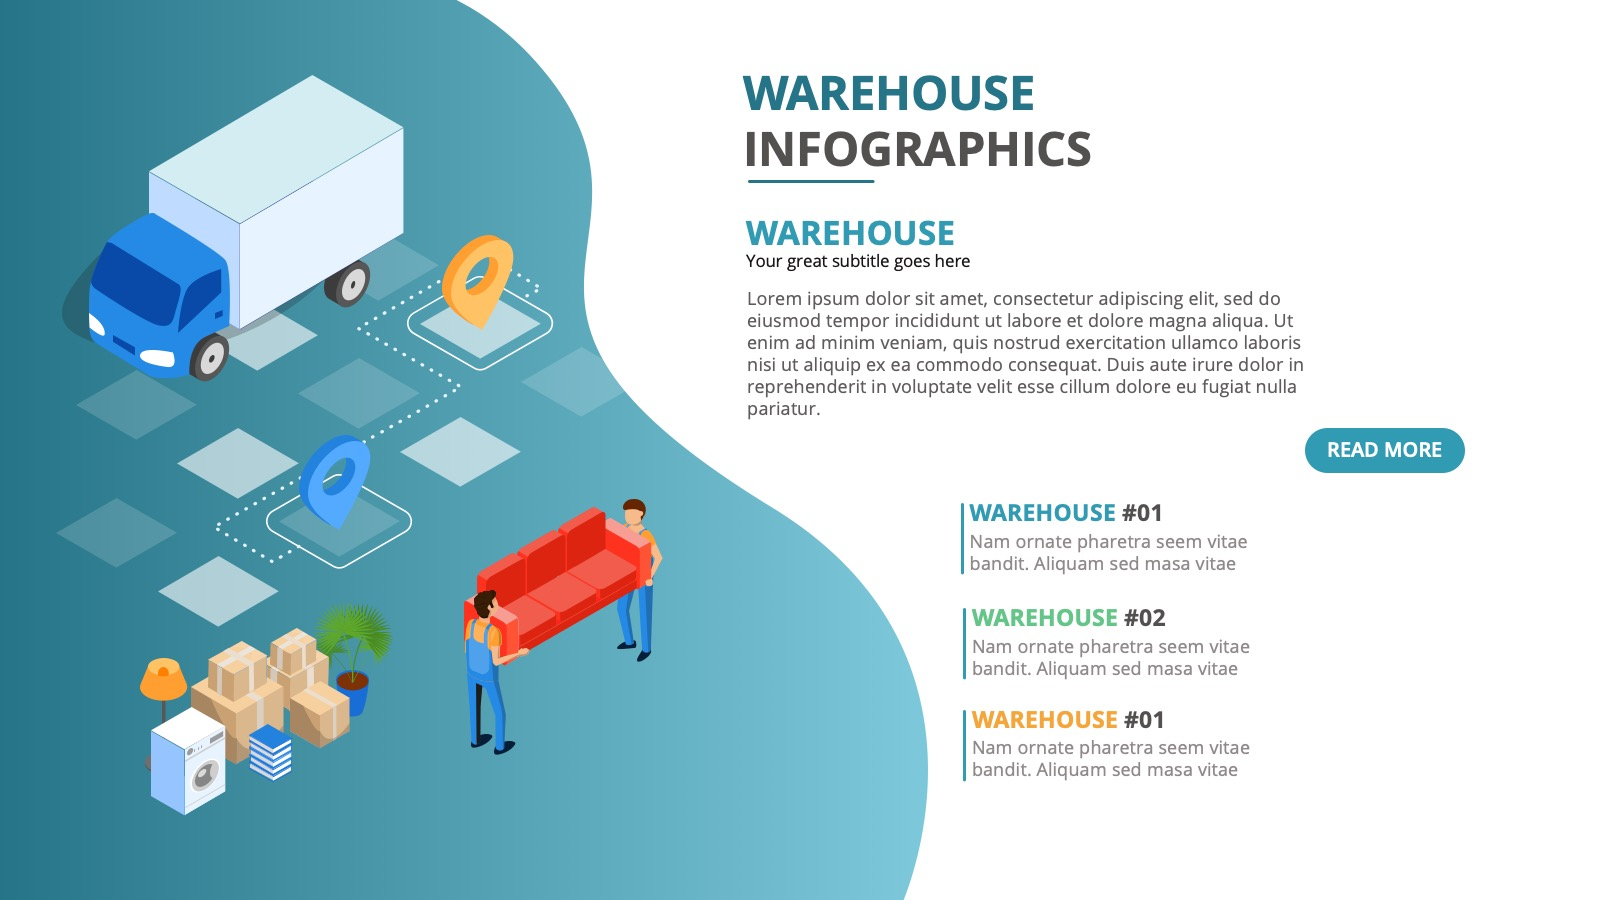 WAREHOUSE INFOGRAPHICS I